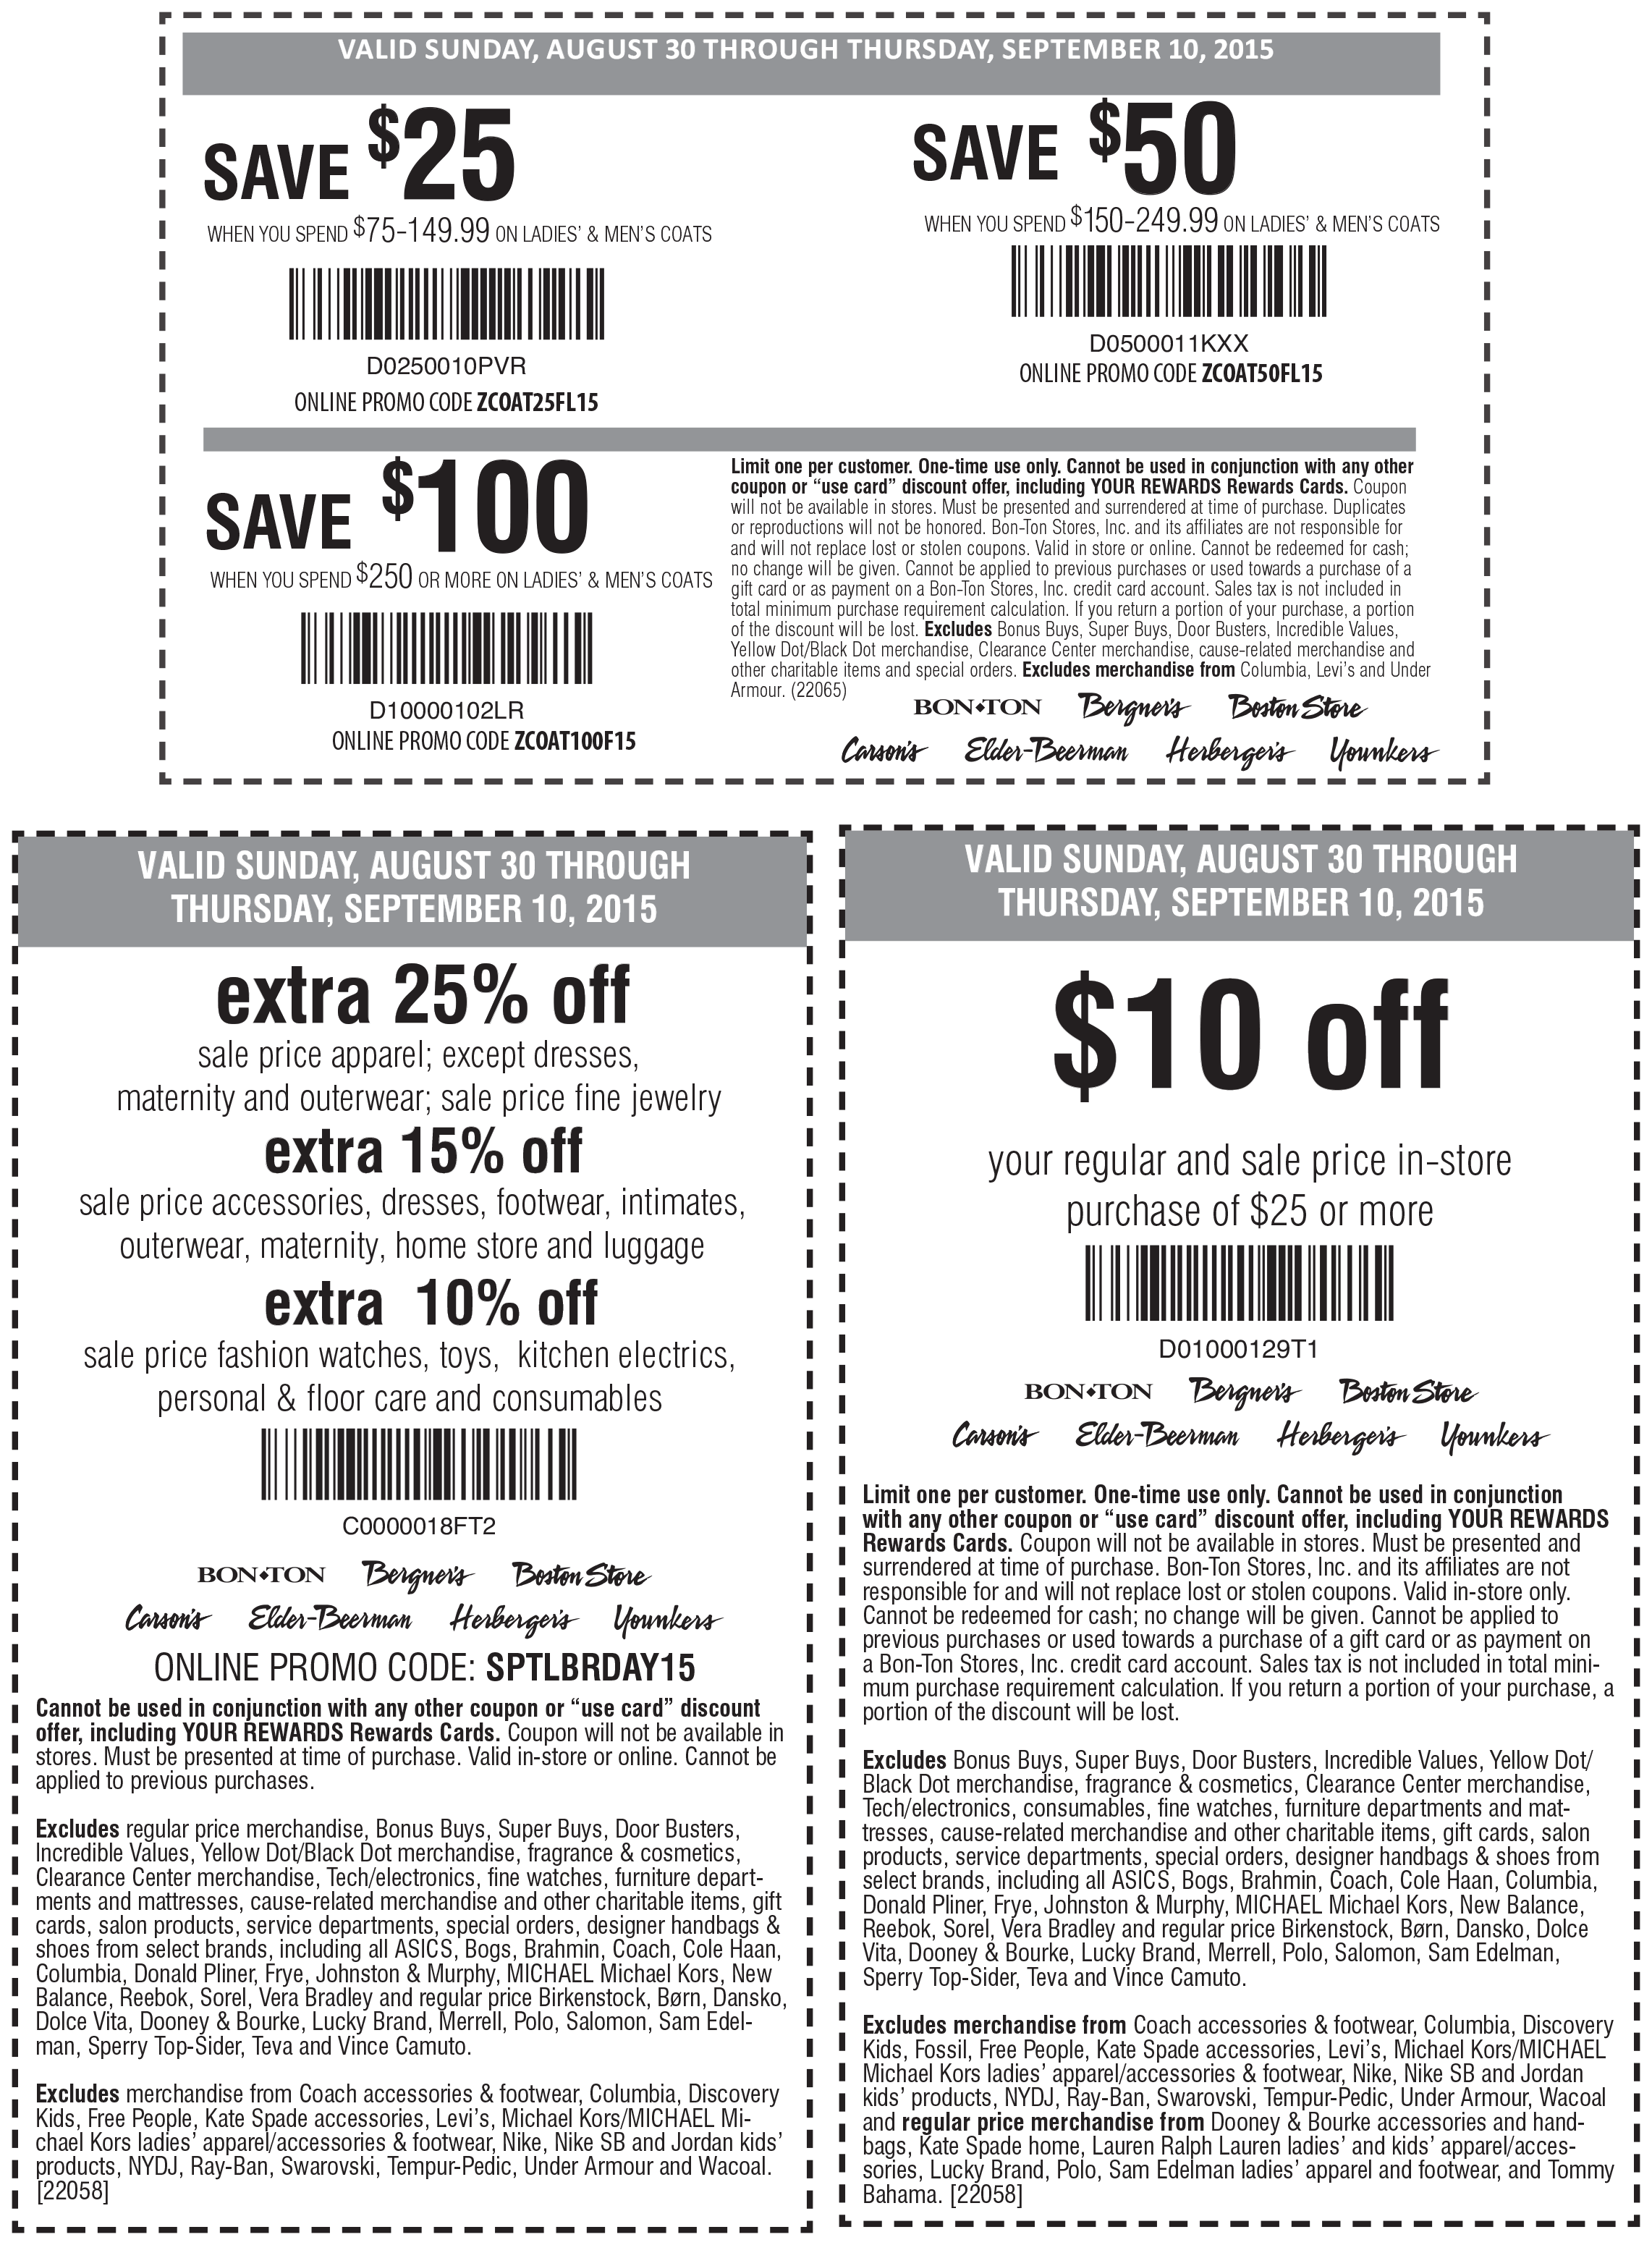 Carsons Coupon September 2017 $10 off $25 & more at Carsons, Bon Ton & sister stores, or 25% off sale online via promo code SPTLBRDAY15